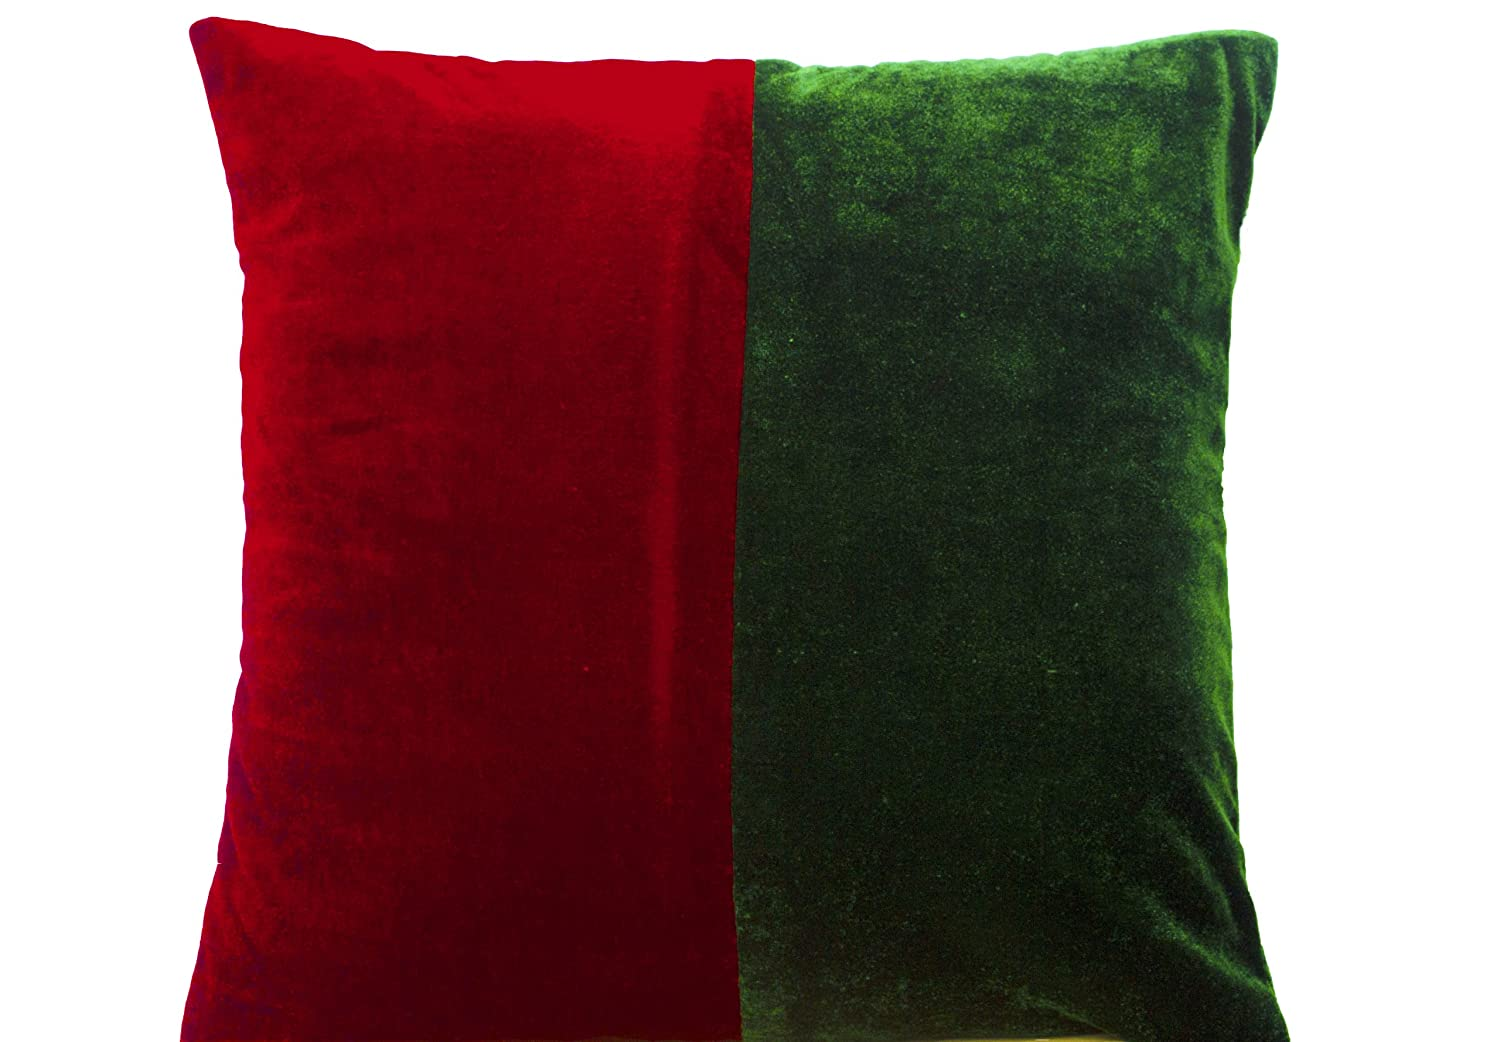 amazoncom amore beaute handmade christmas throw pillow covers  - amazoncom amore beaute handmade christmas throw pillow covers red andgreen colorblock velvet cushion cover  handcrafted decorative throwpillowcover